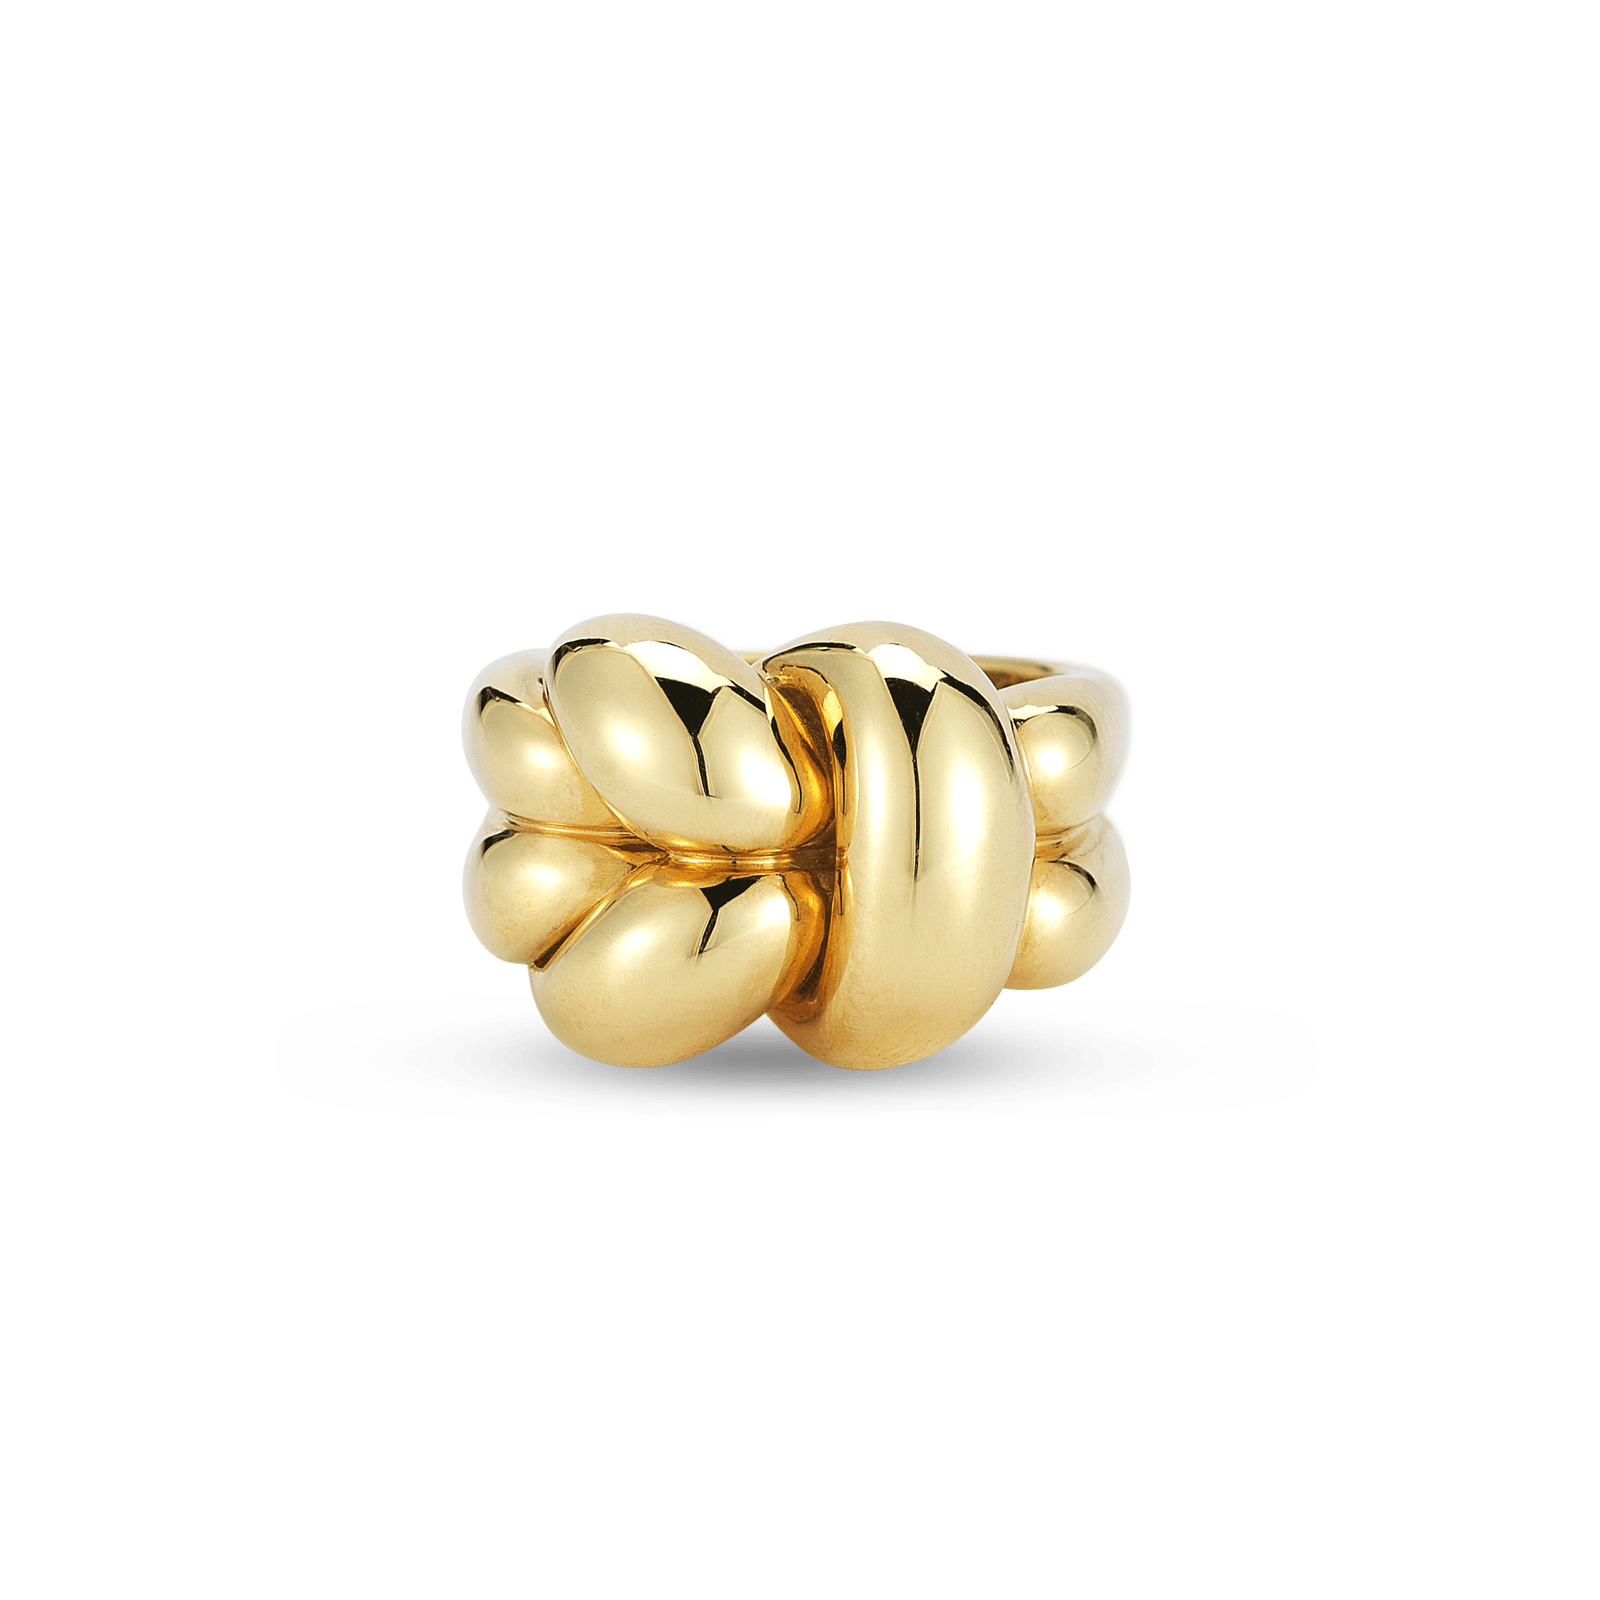 Roberto Coin 18k Gold Knot Ring, Size 7